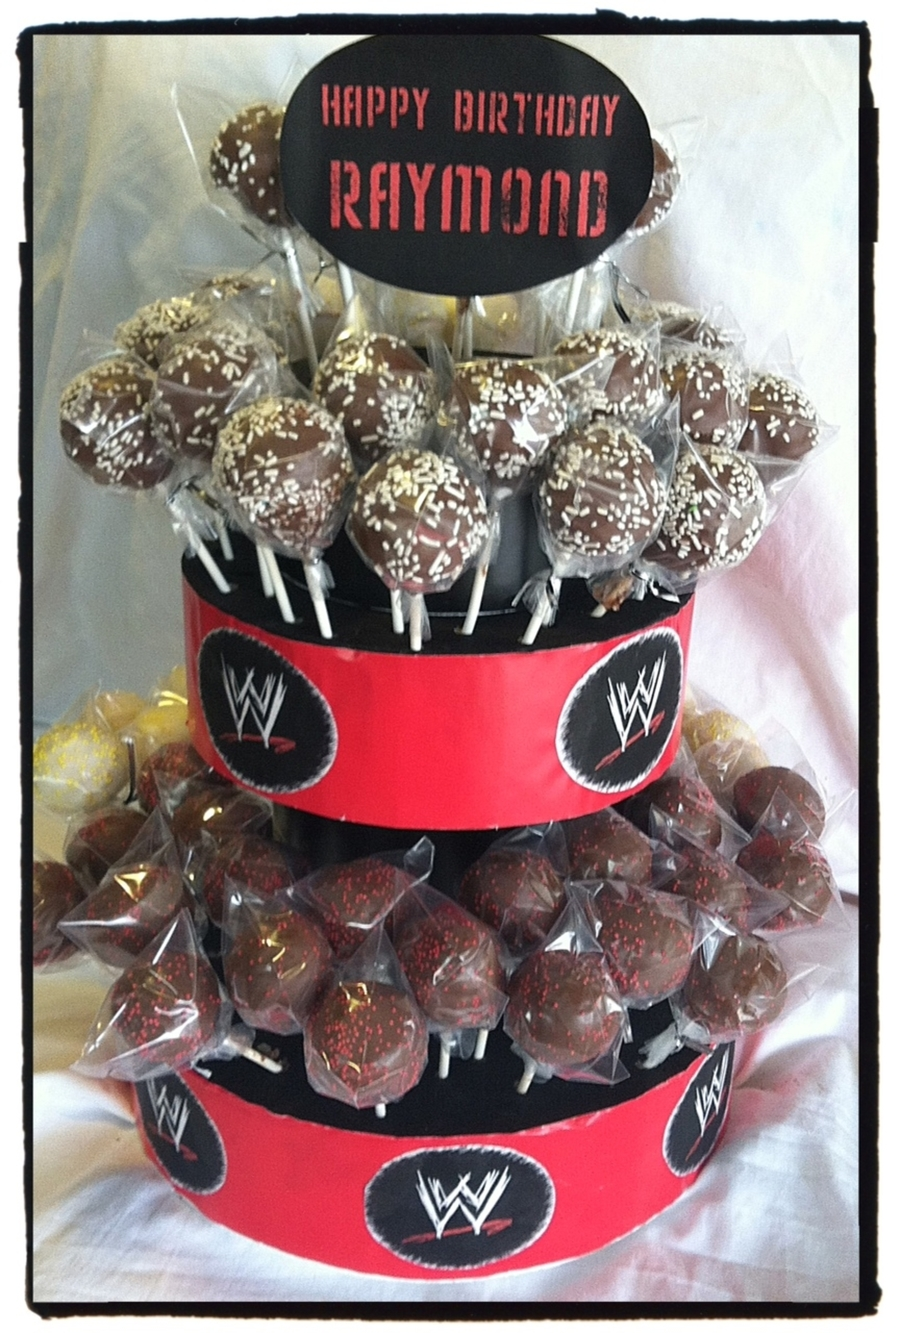 Wwe Wrestling Cake Pop Tower on Cake Central